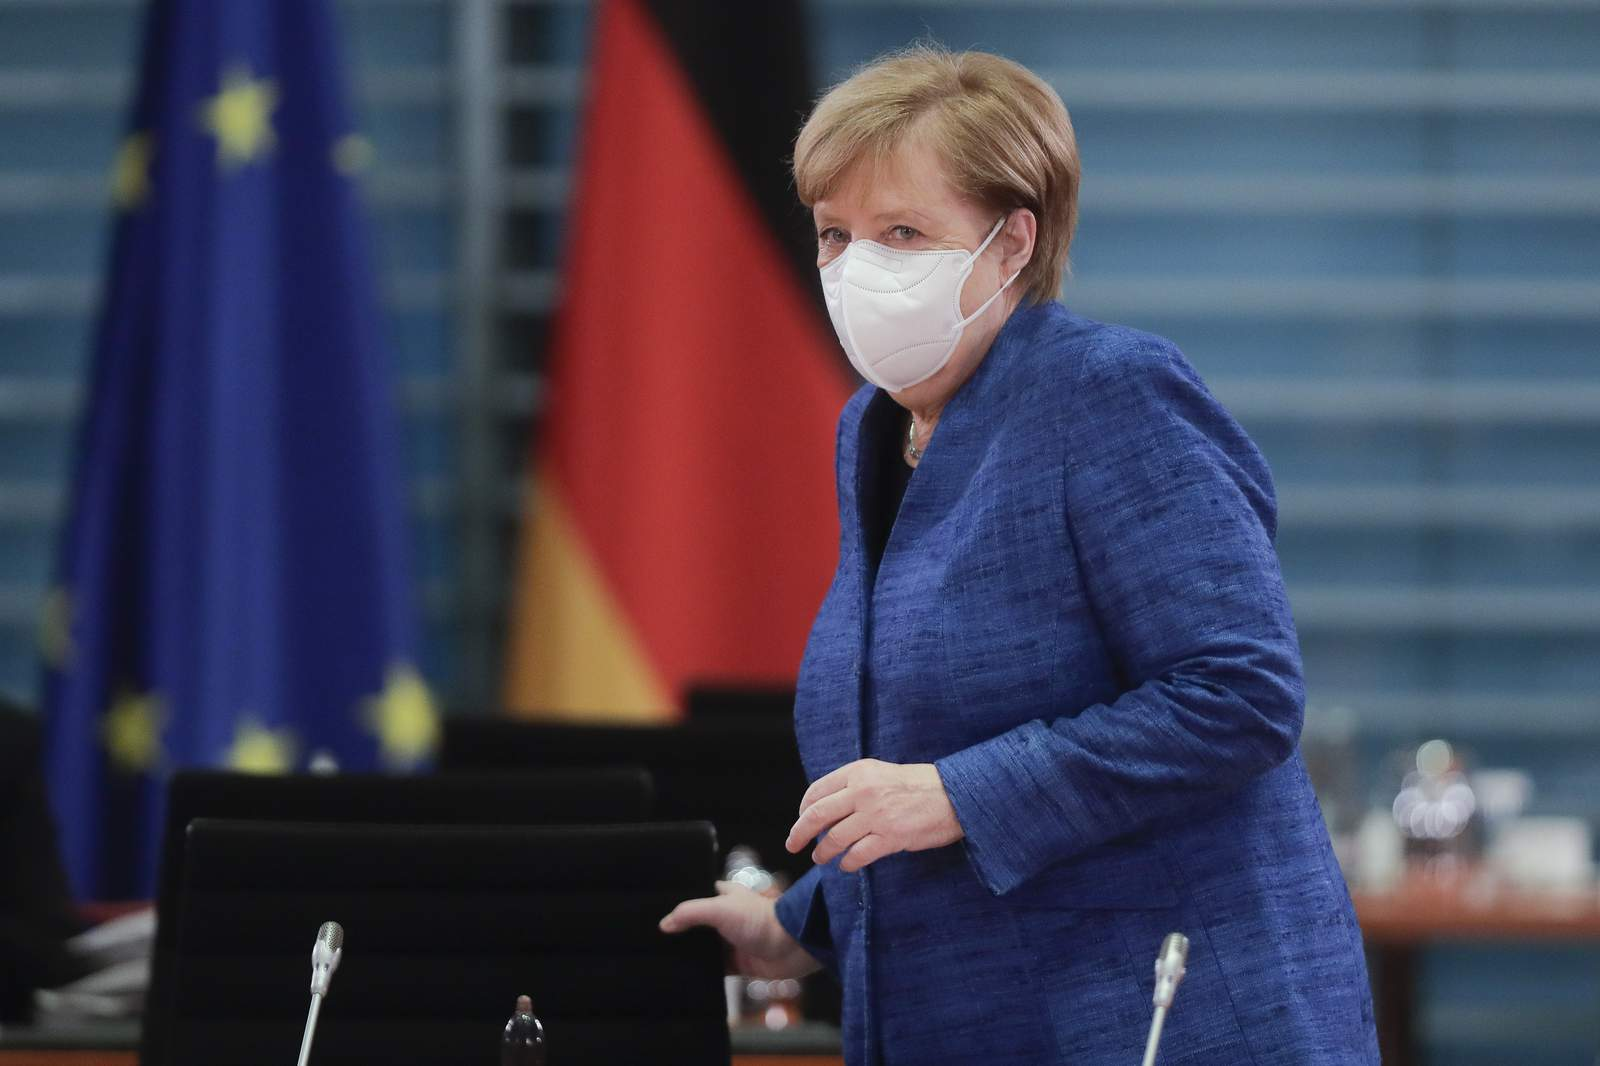 Germany Leaders Announce Four Week Shutdown As Covid Cases Spike